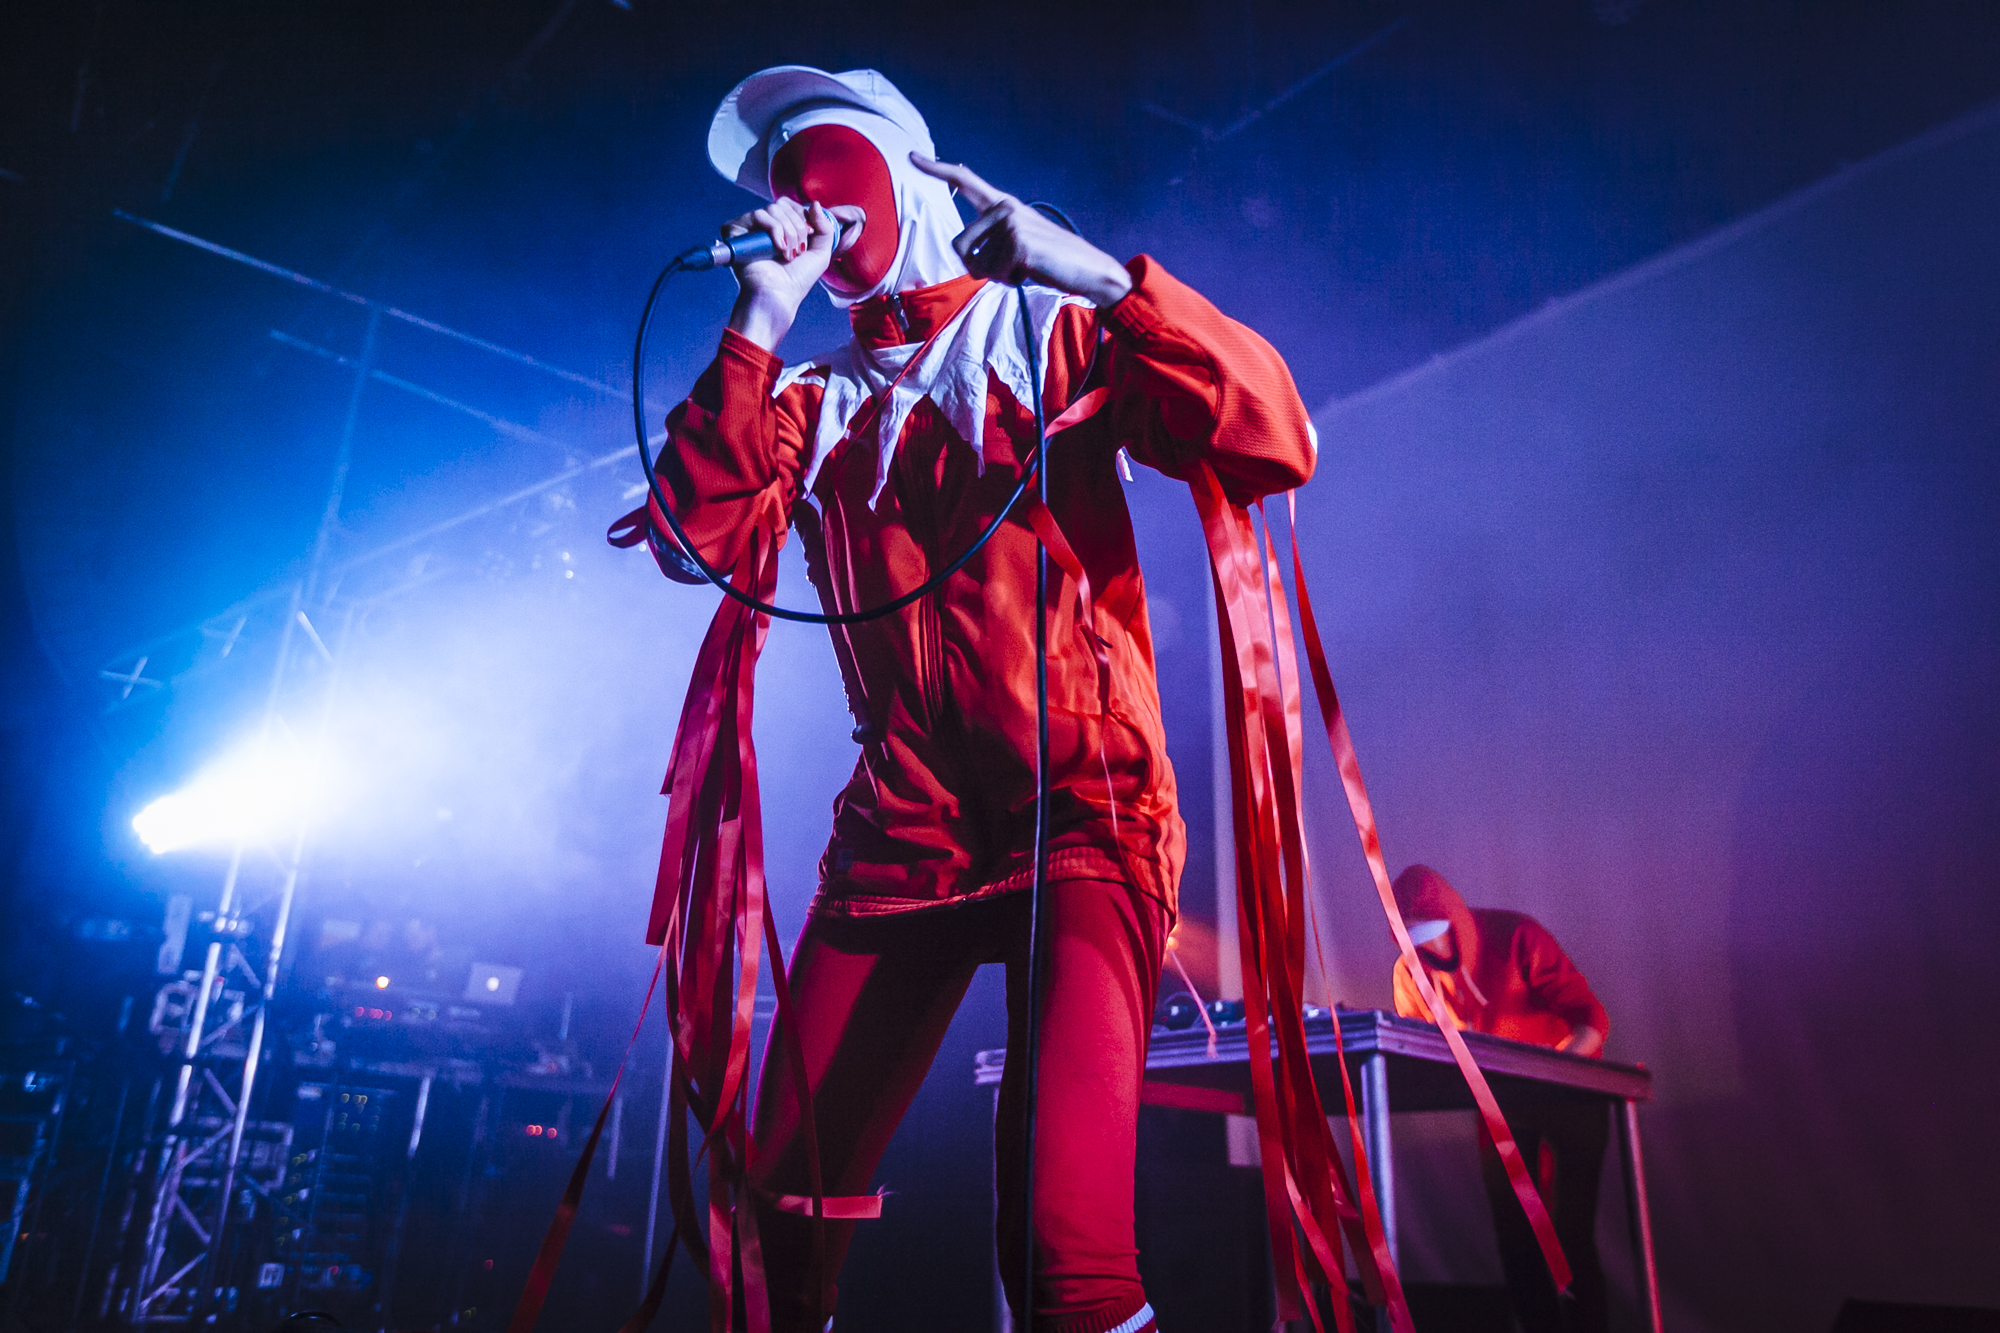 Gazelle Twin in Red Jester-style costume performing live at Supersonic 2018